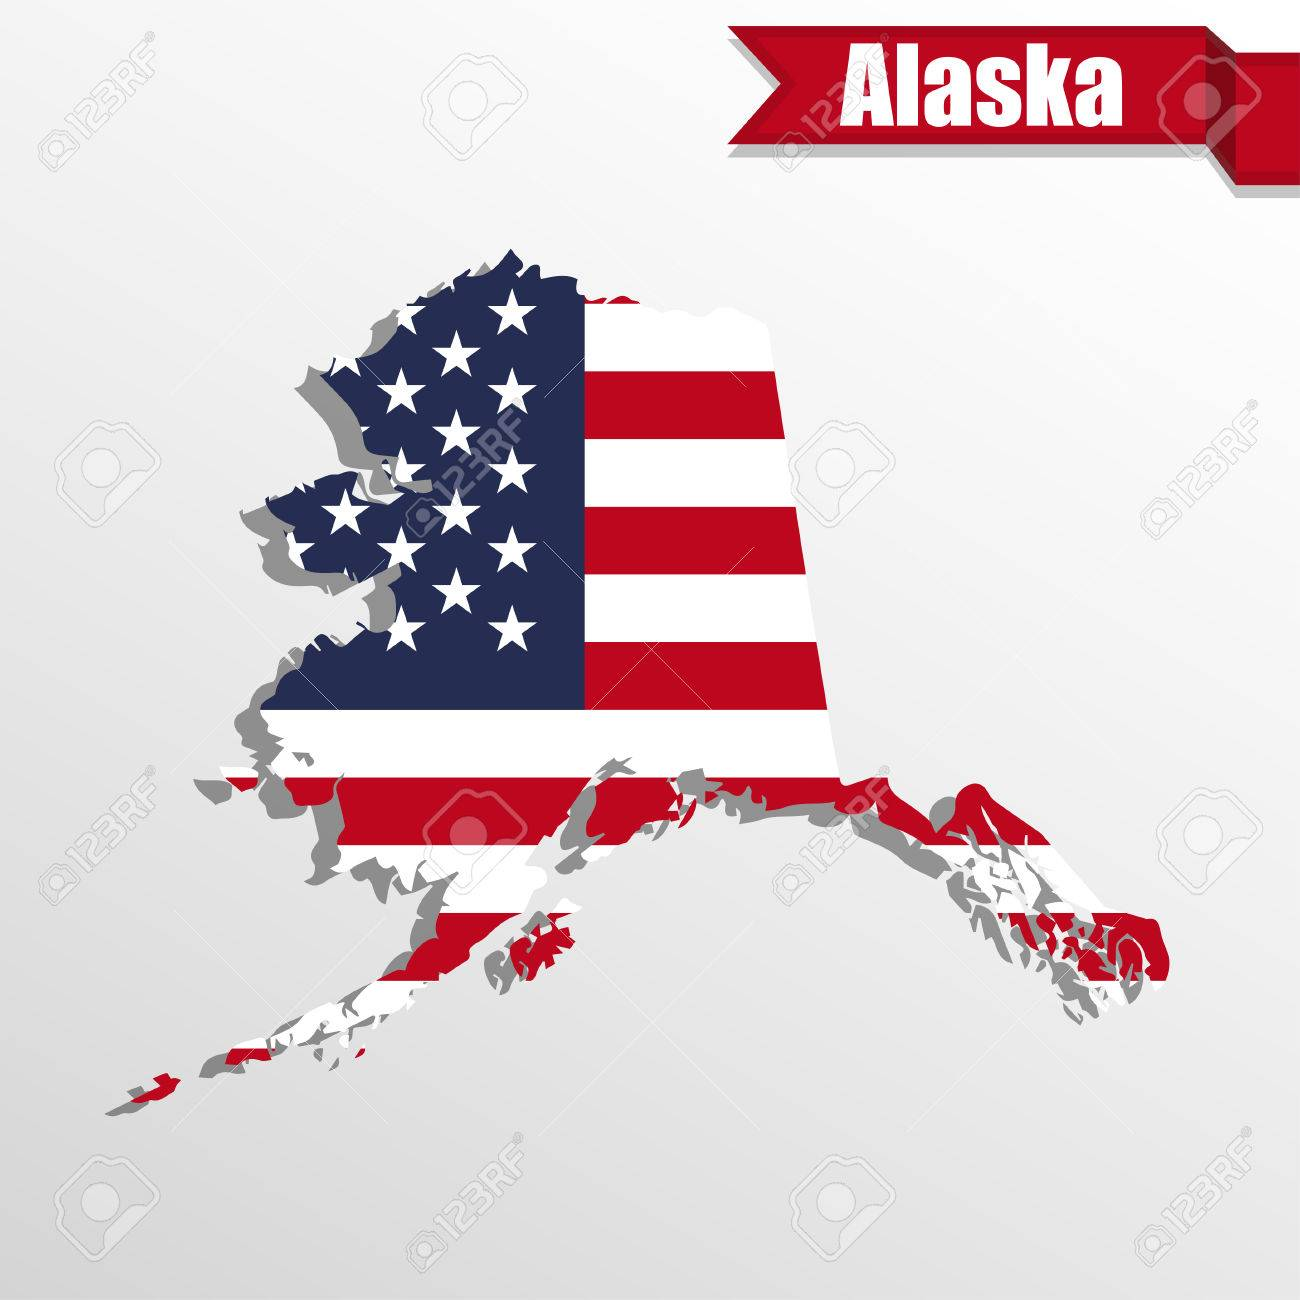 Alaska State Map With US Flag Inside And Ribbon Royalty Free ...